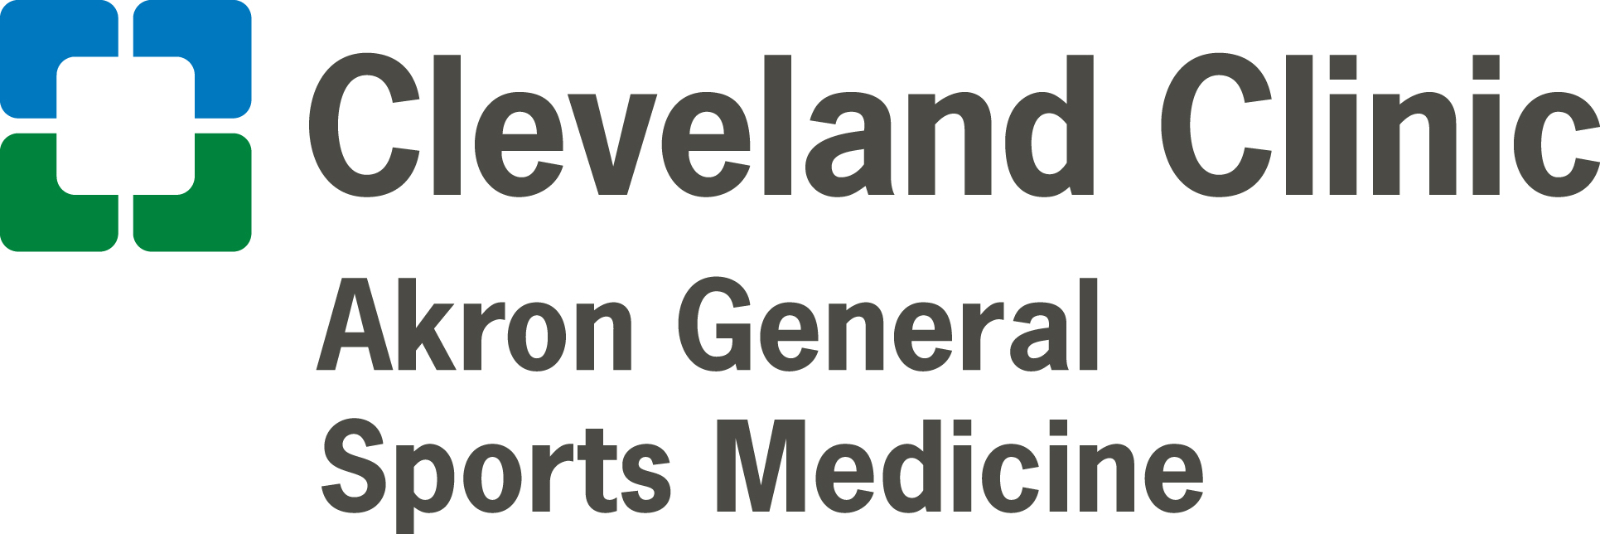 Cleveland Clinic/Akron General Recommendation for Physicals